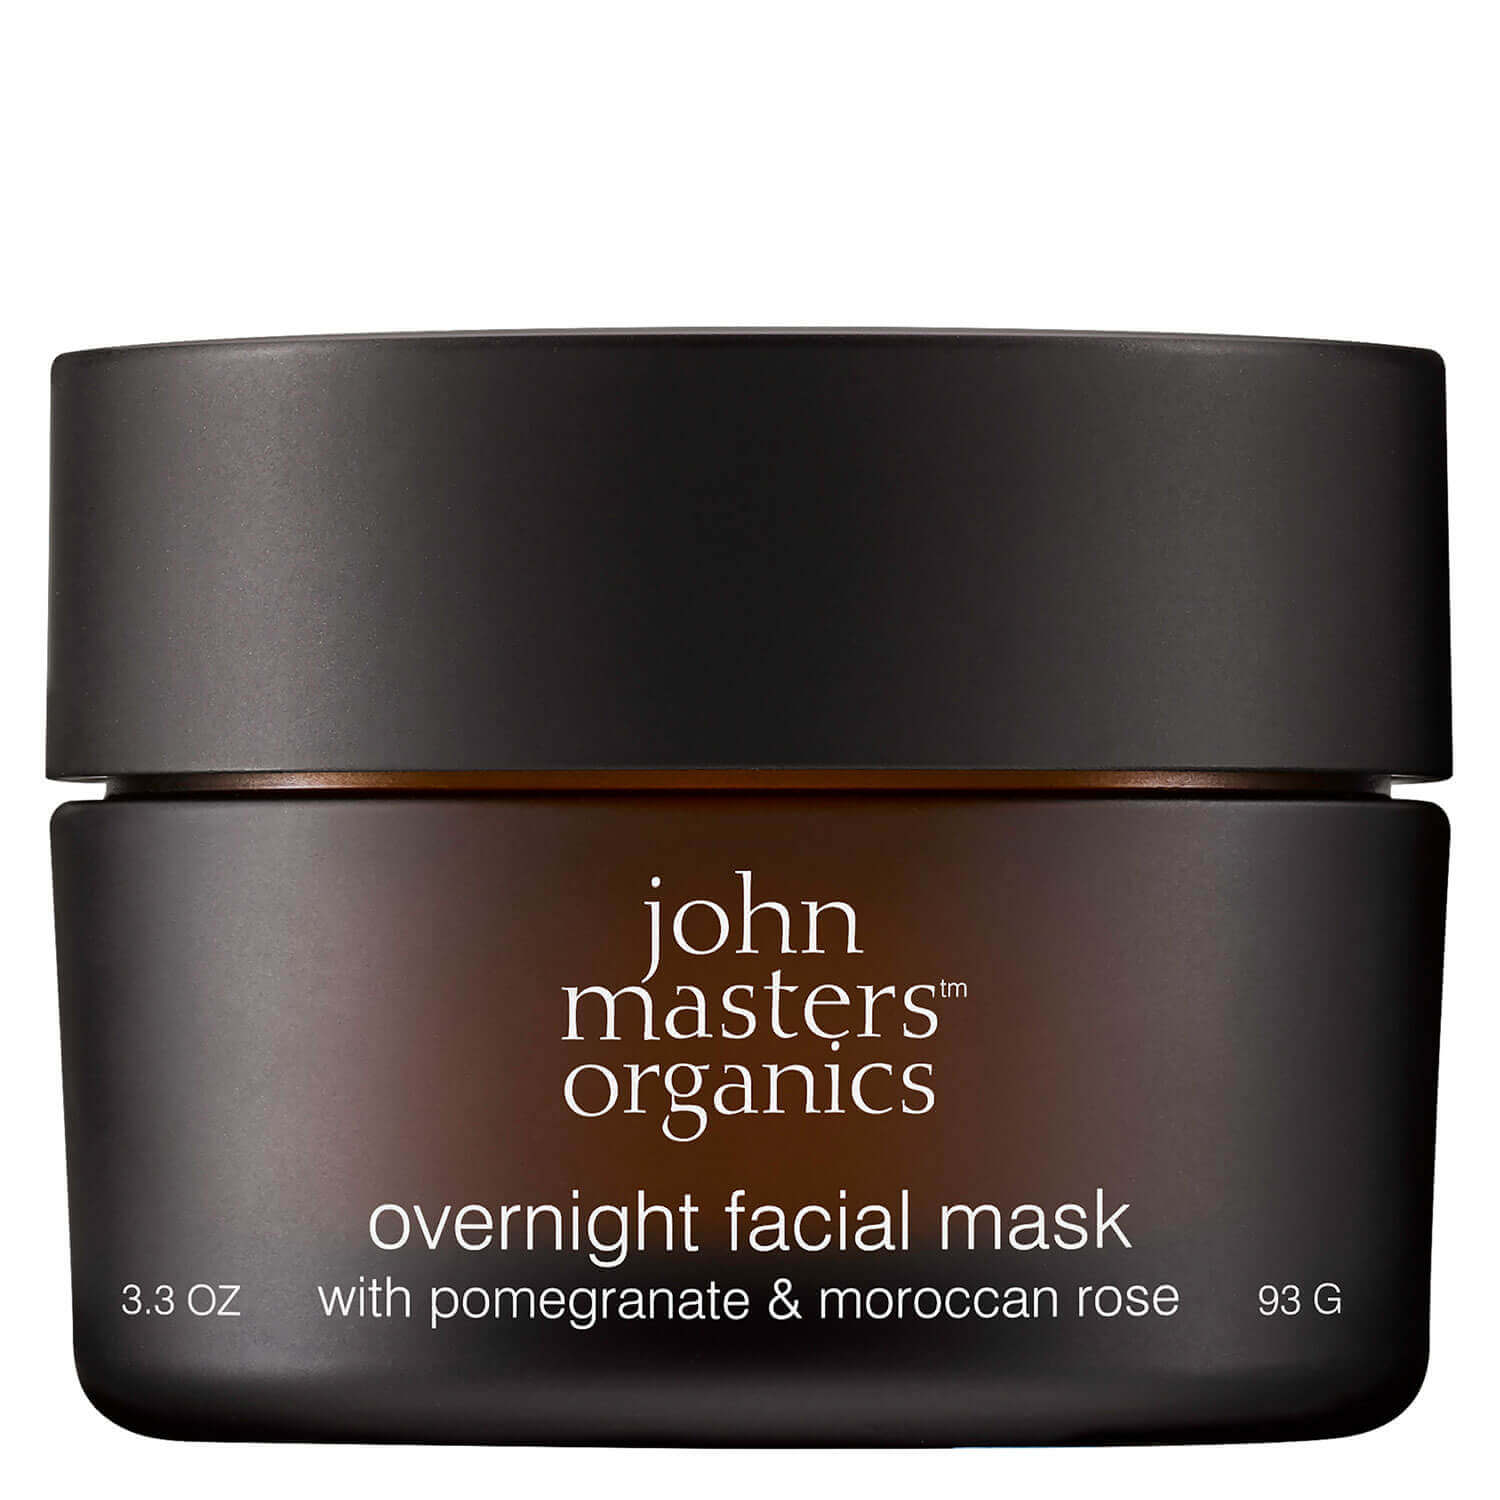 JMO Skin & Body Care - Overnight Facial Mask with Pomegranate & Moroccan Rose